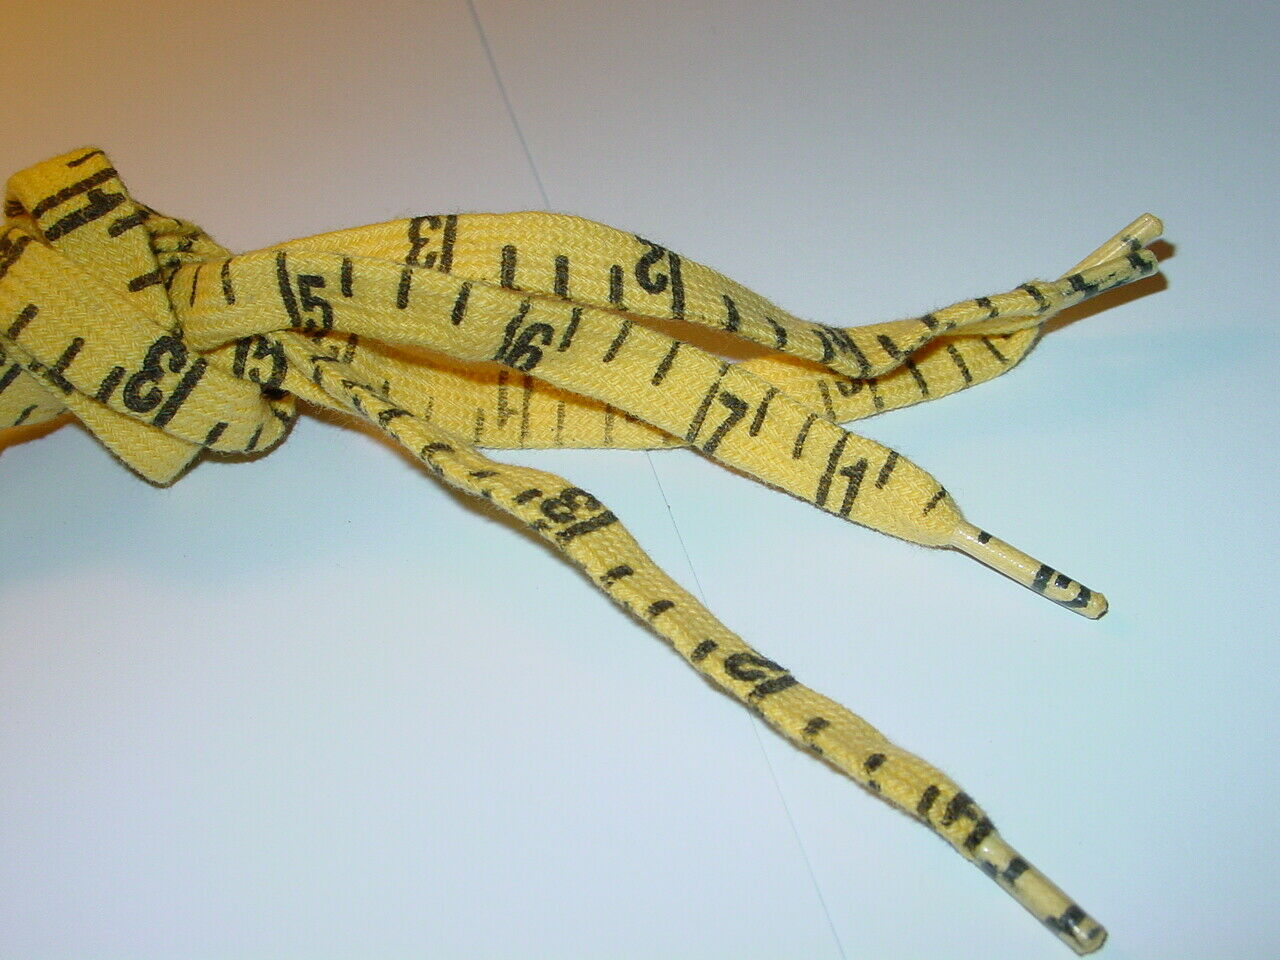 MEASURING TAPE 1980's VINTAGE SHOE LACES 26 INCH NEW OLD STOCK 1 PAIR